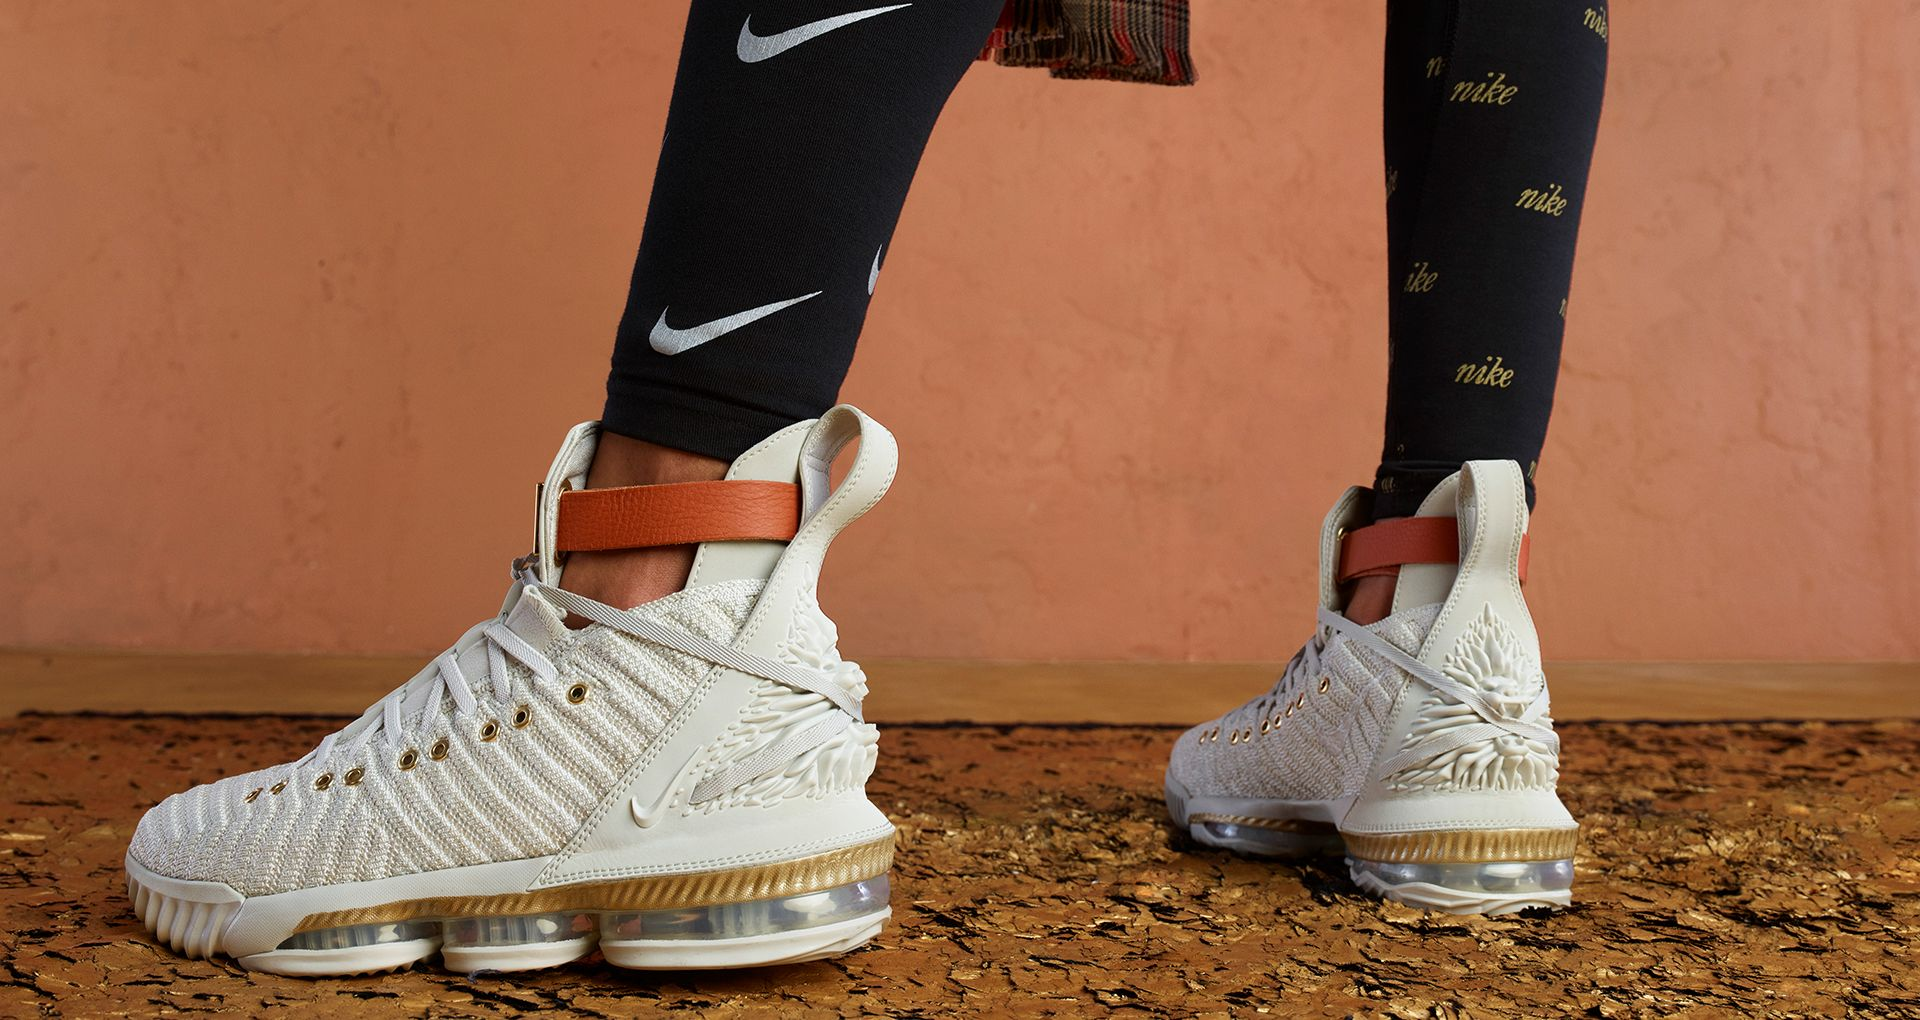 timeless design 054be 7a492 Women's Lebron 16 HFR 'White & Sail' Release Date. Nike+ SNKRS